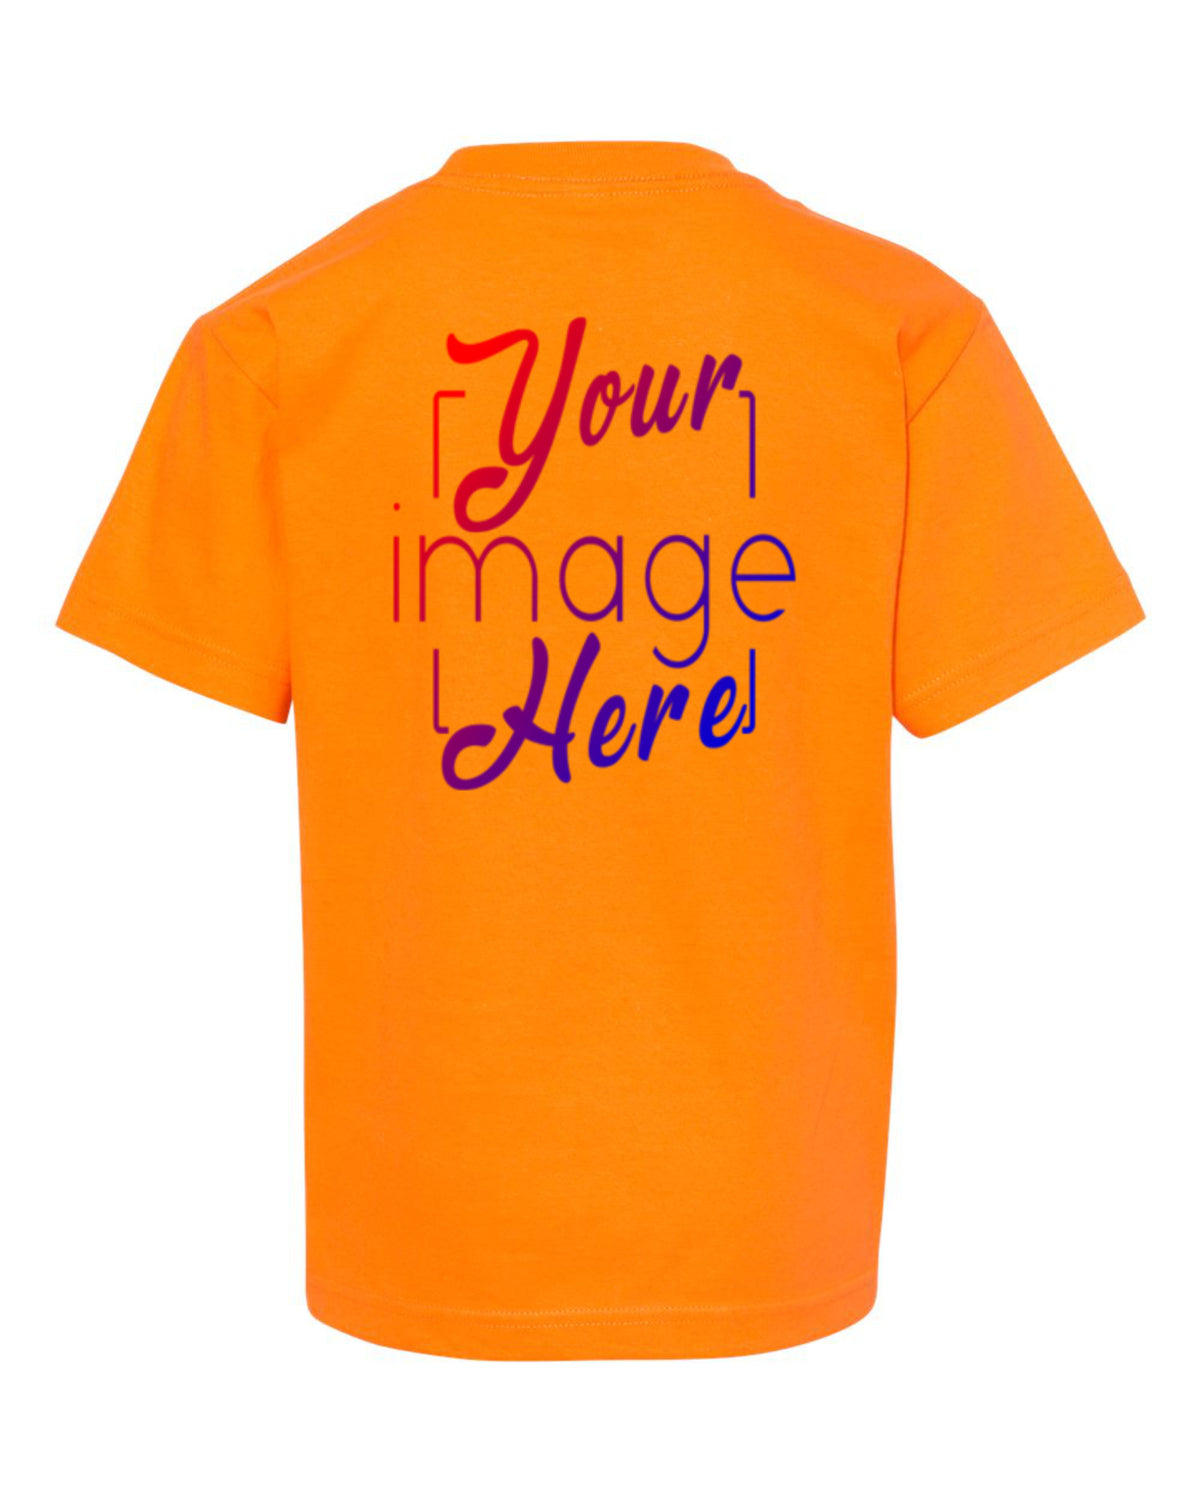 Back Image of a Youth Alstyle T-shirt in Orange for Custom Printing